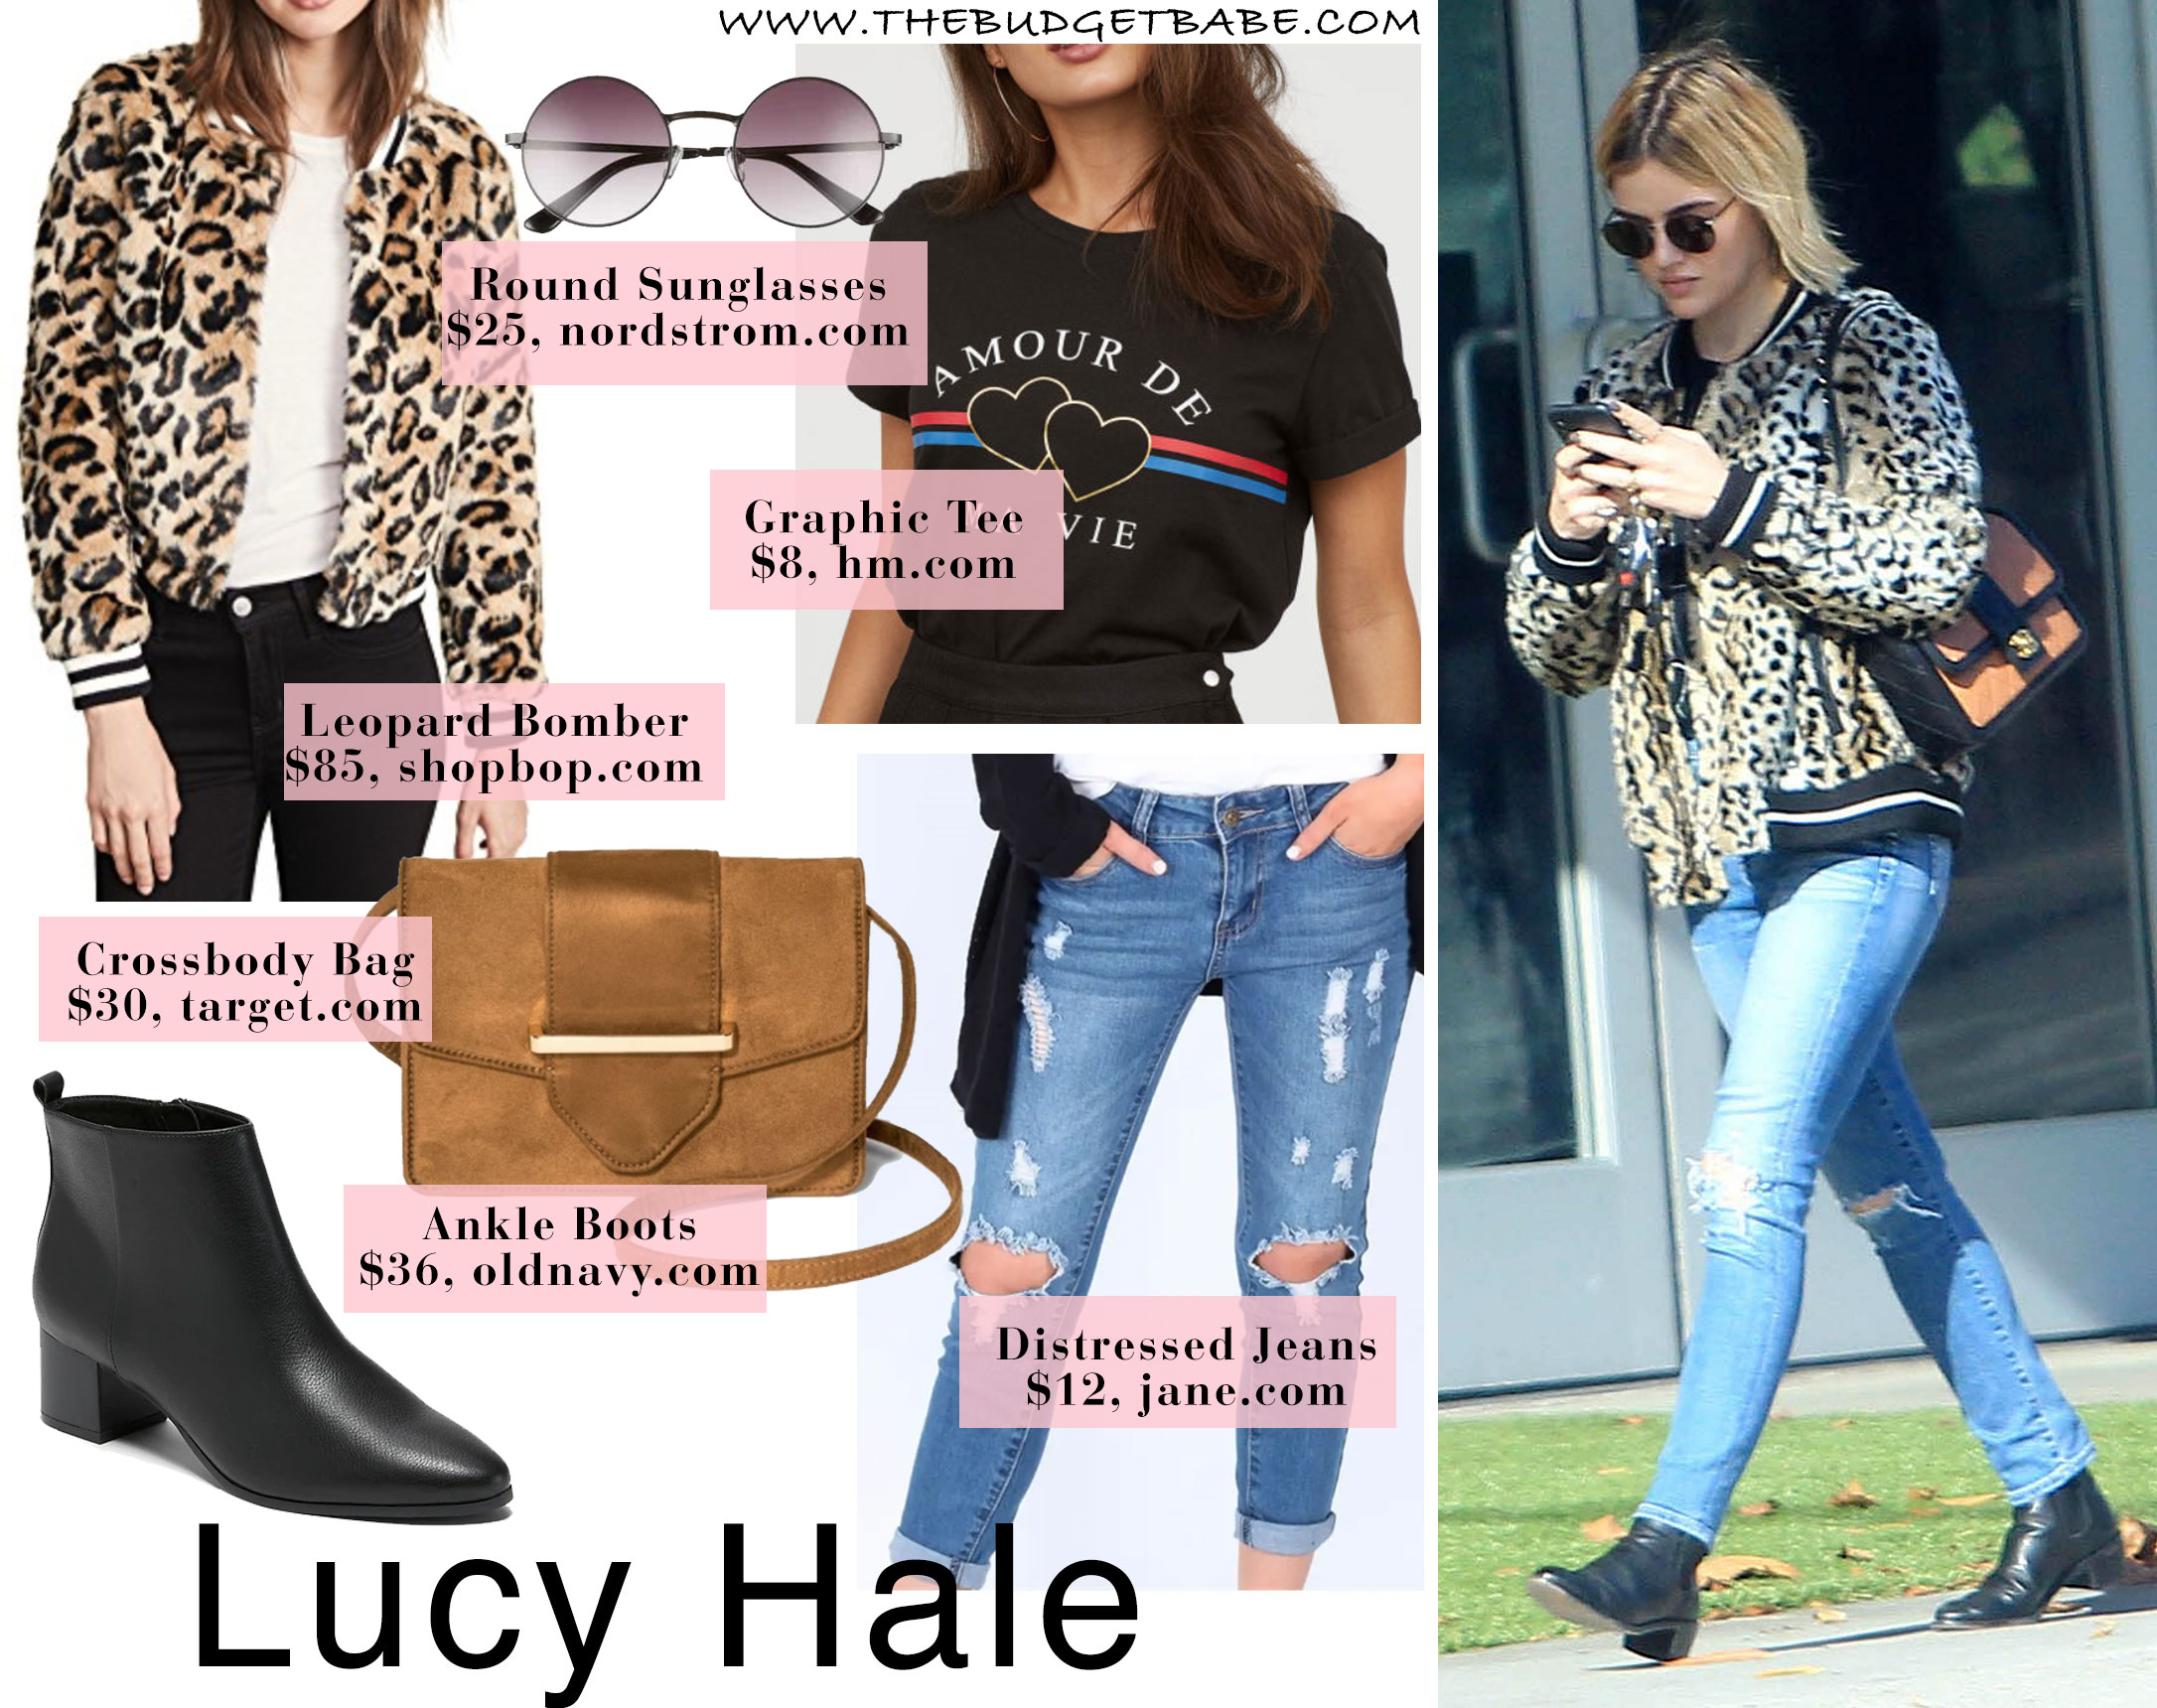 Lucy Hale rocks a bomber in a leopard print.